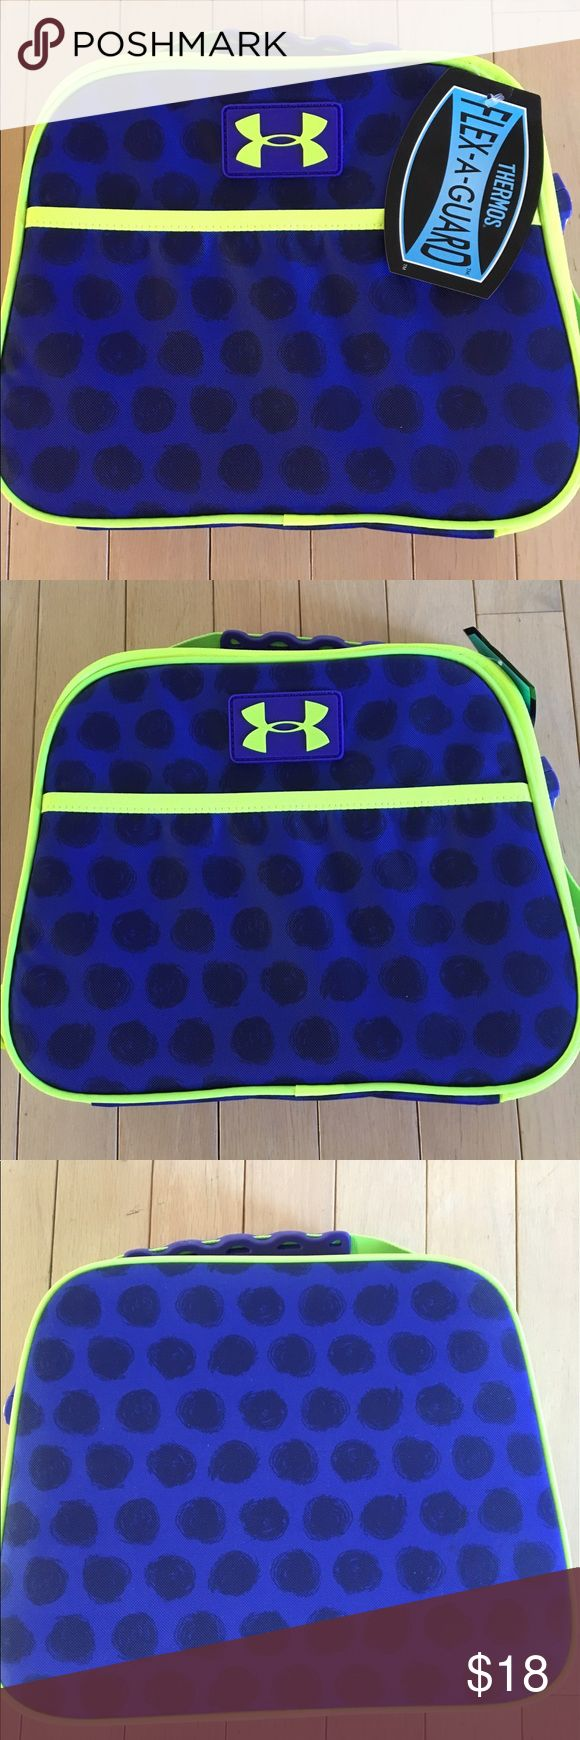 NWT UNDER ARMOUR INSULATED LUNCH COOLER NWT UNDER ARMOUR INSULATED LUNCH COOLER. Neon green and purple. Measures approximately 11 inches x 9 inches Under Armour Other